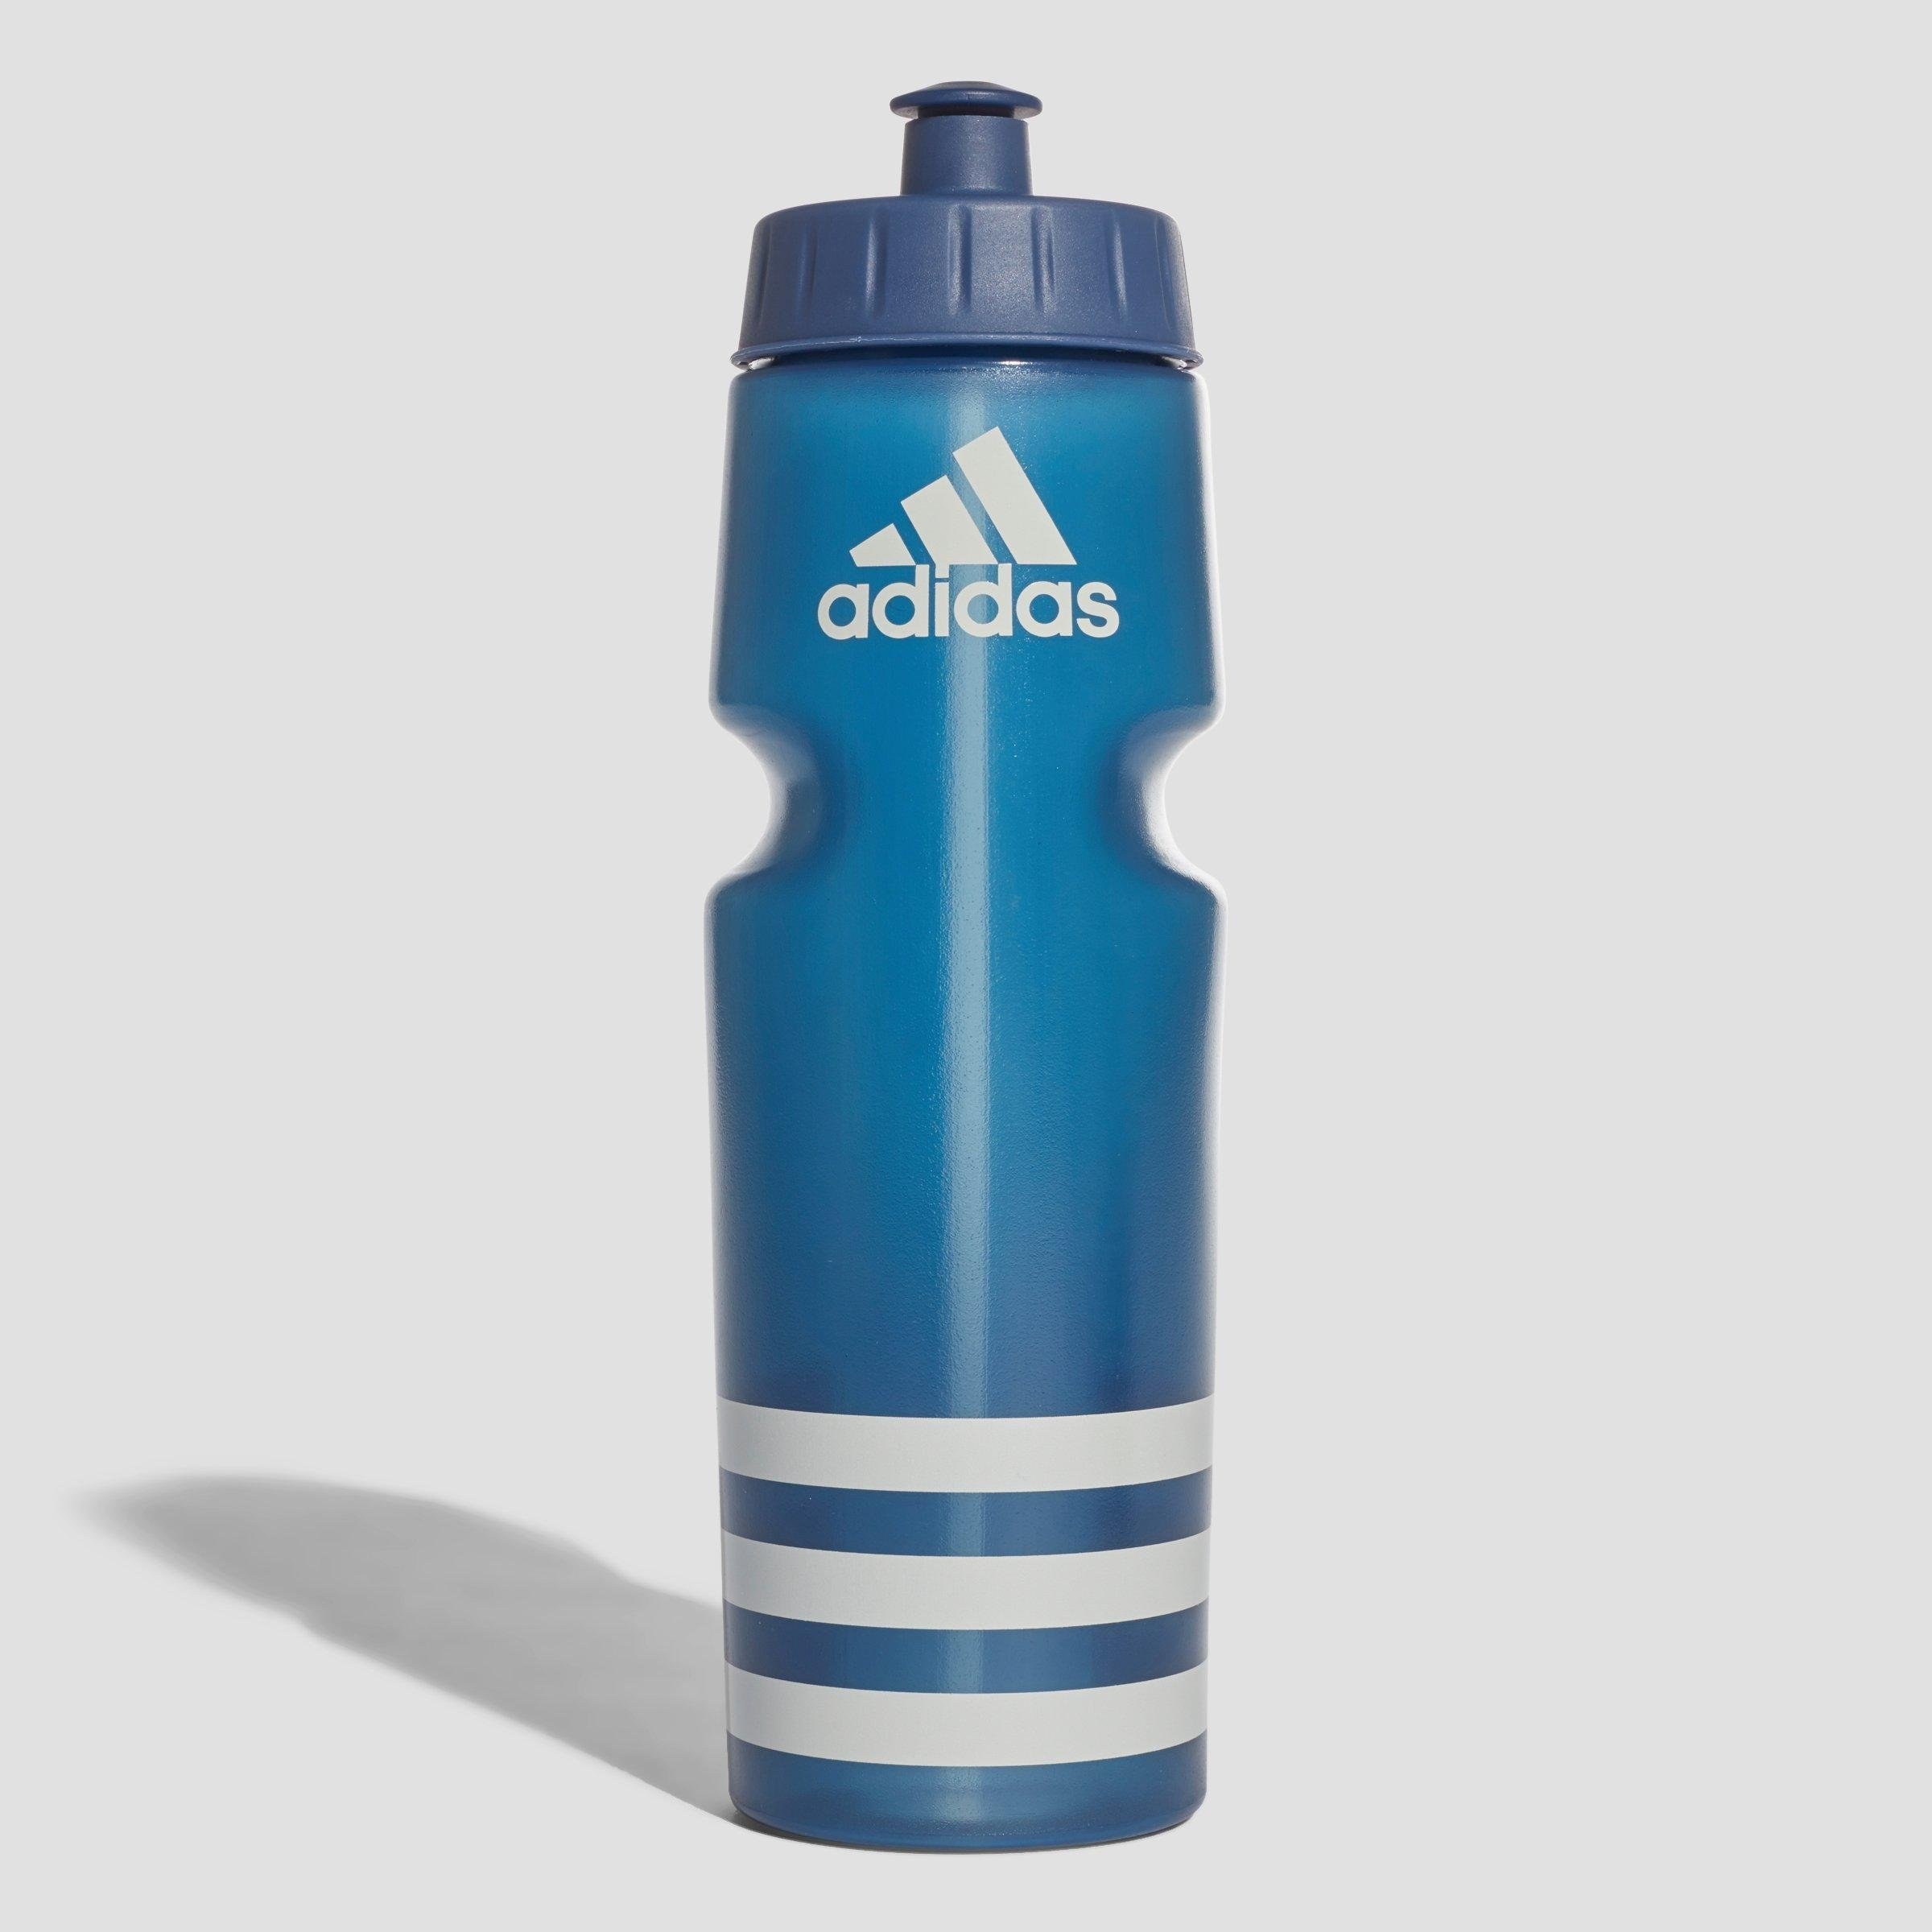 ADIDAS 3-STRIPES PERFORMANCE BIDON 0,75 LITER BLAUW